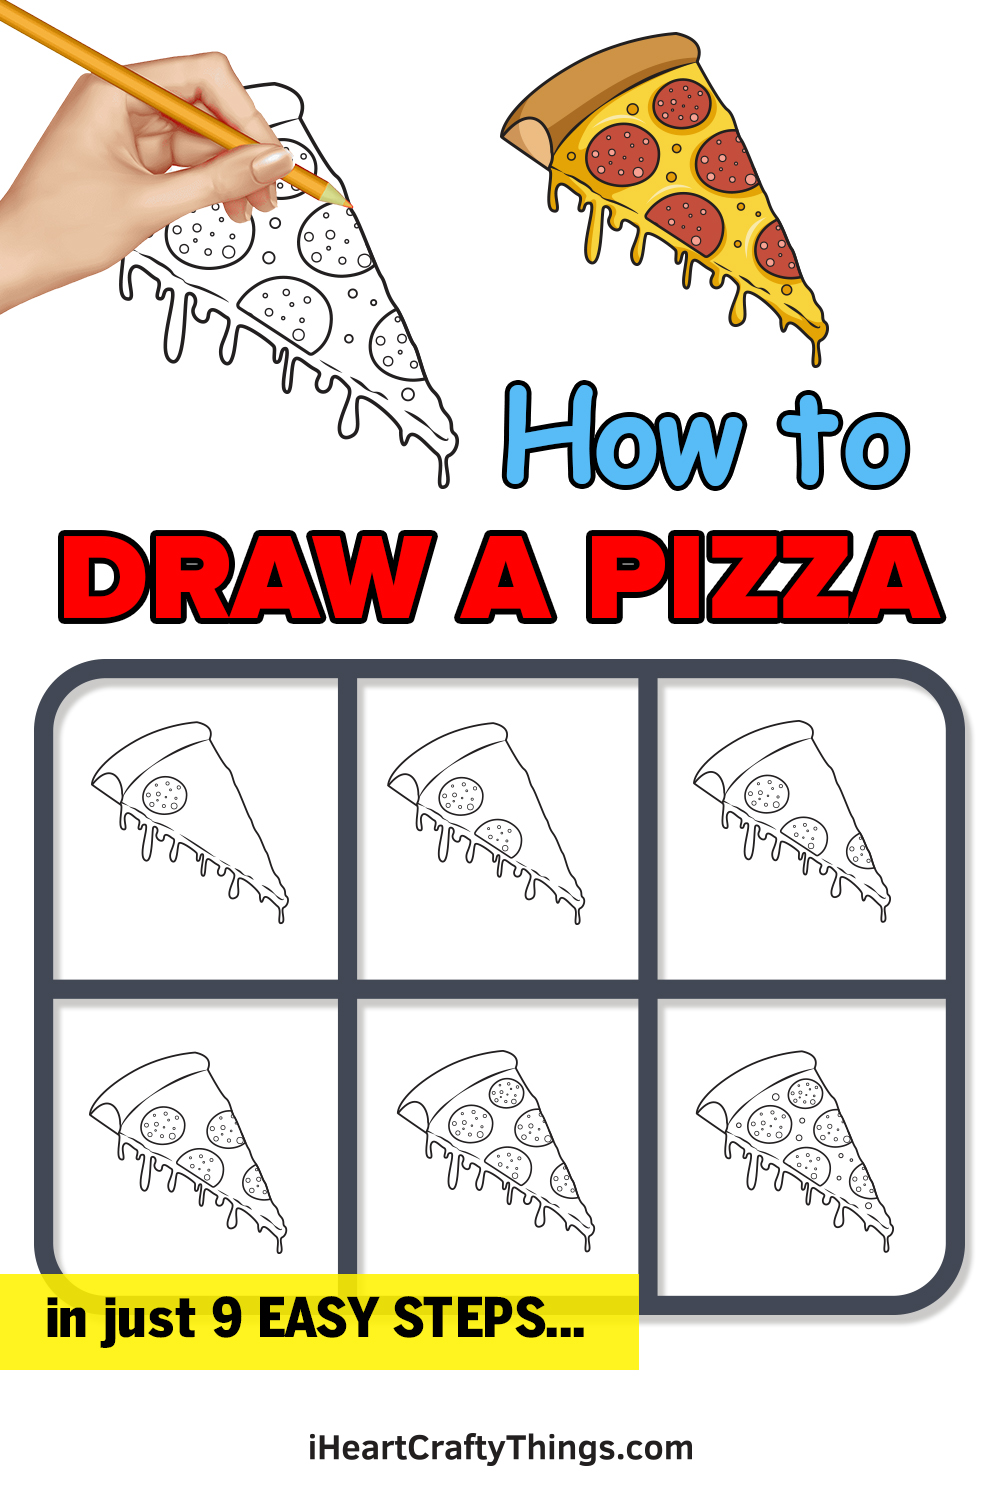 how to draw a pizza in 9 easy steps